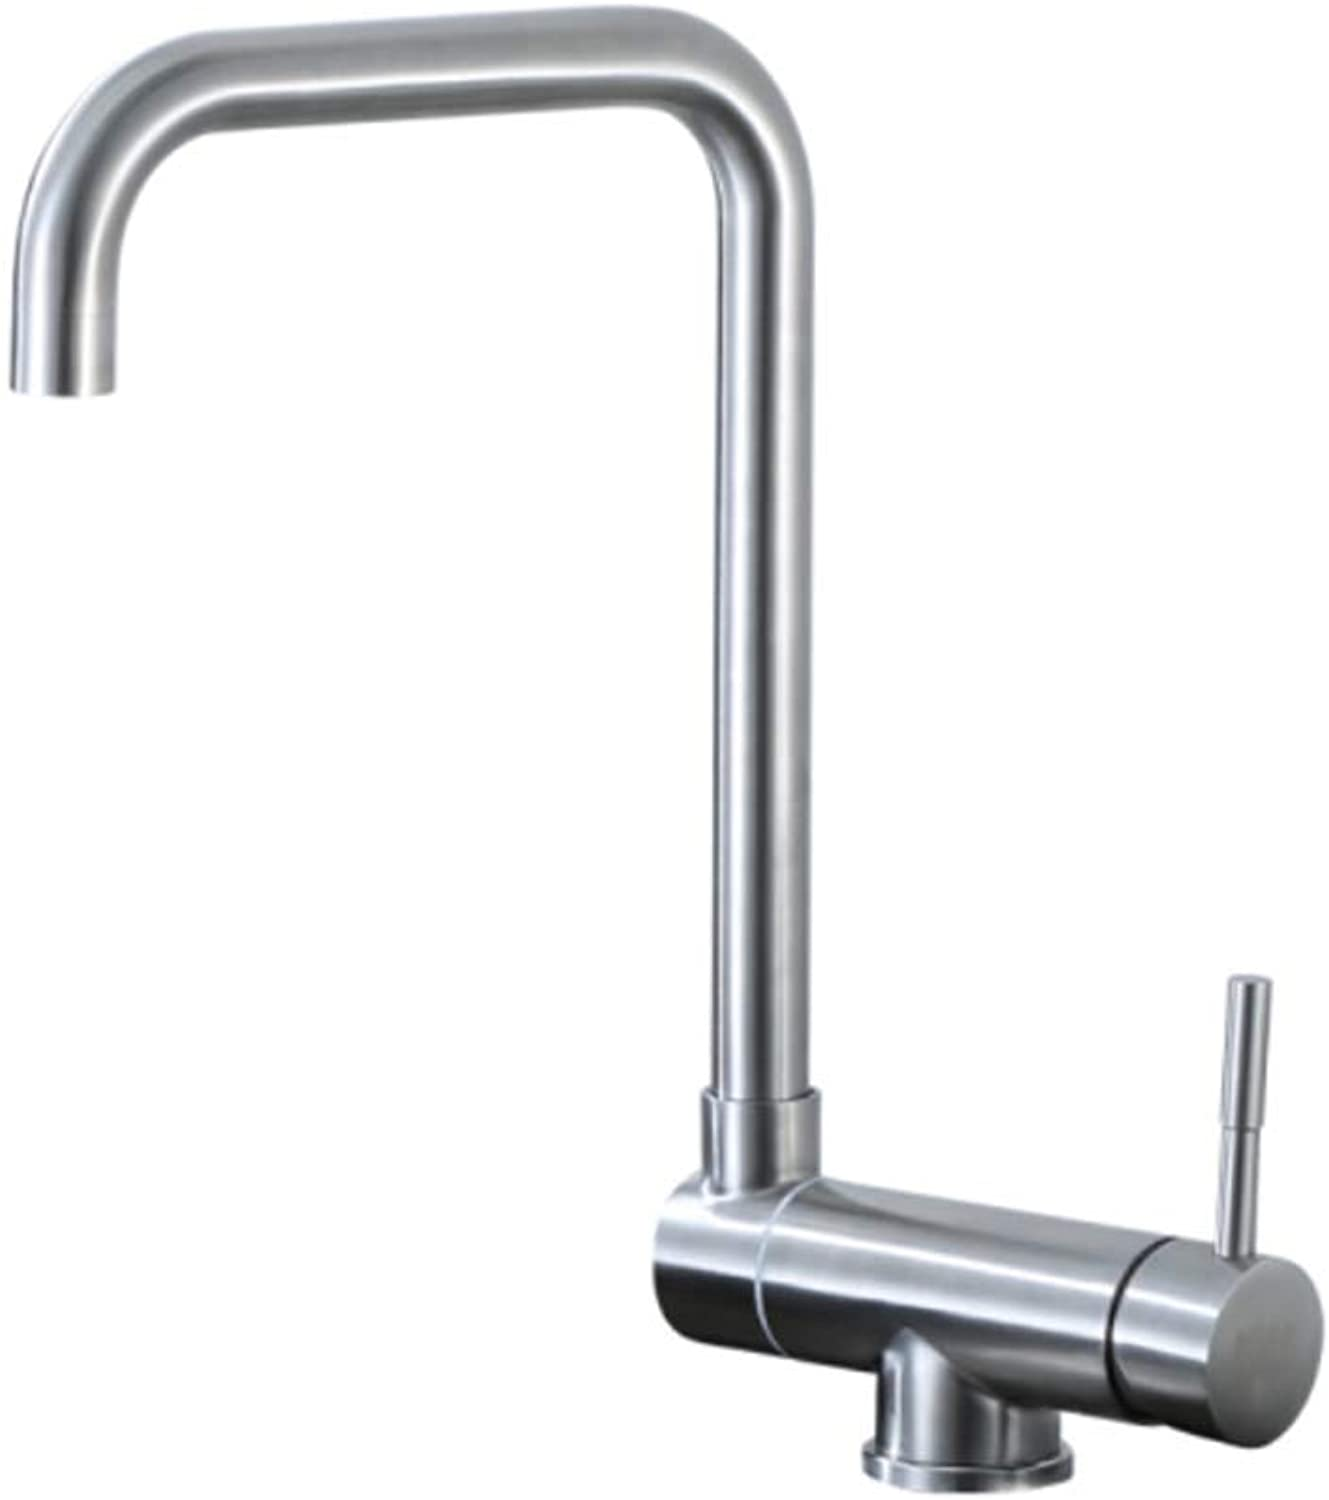 Basin Faucet304 Stainless Steel Kitchen Hot and Cold Faucet Folding, redating, Single Hole Anti Filing Tank, Vegetable Basin.